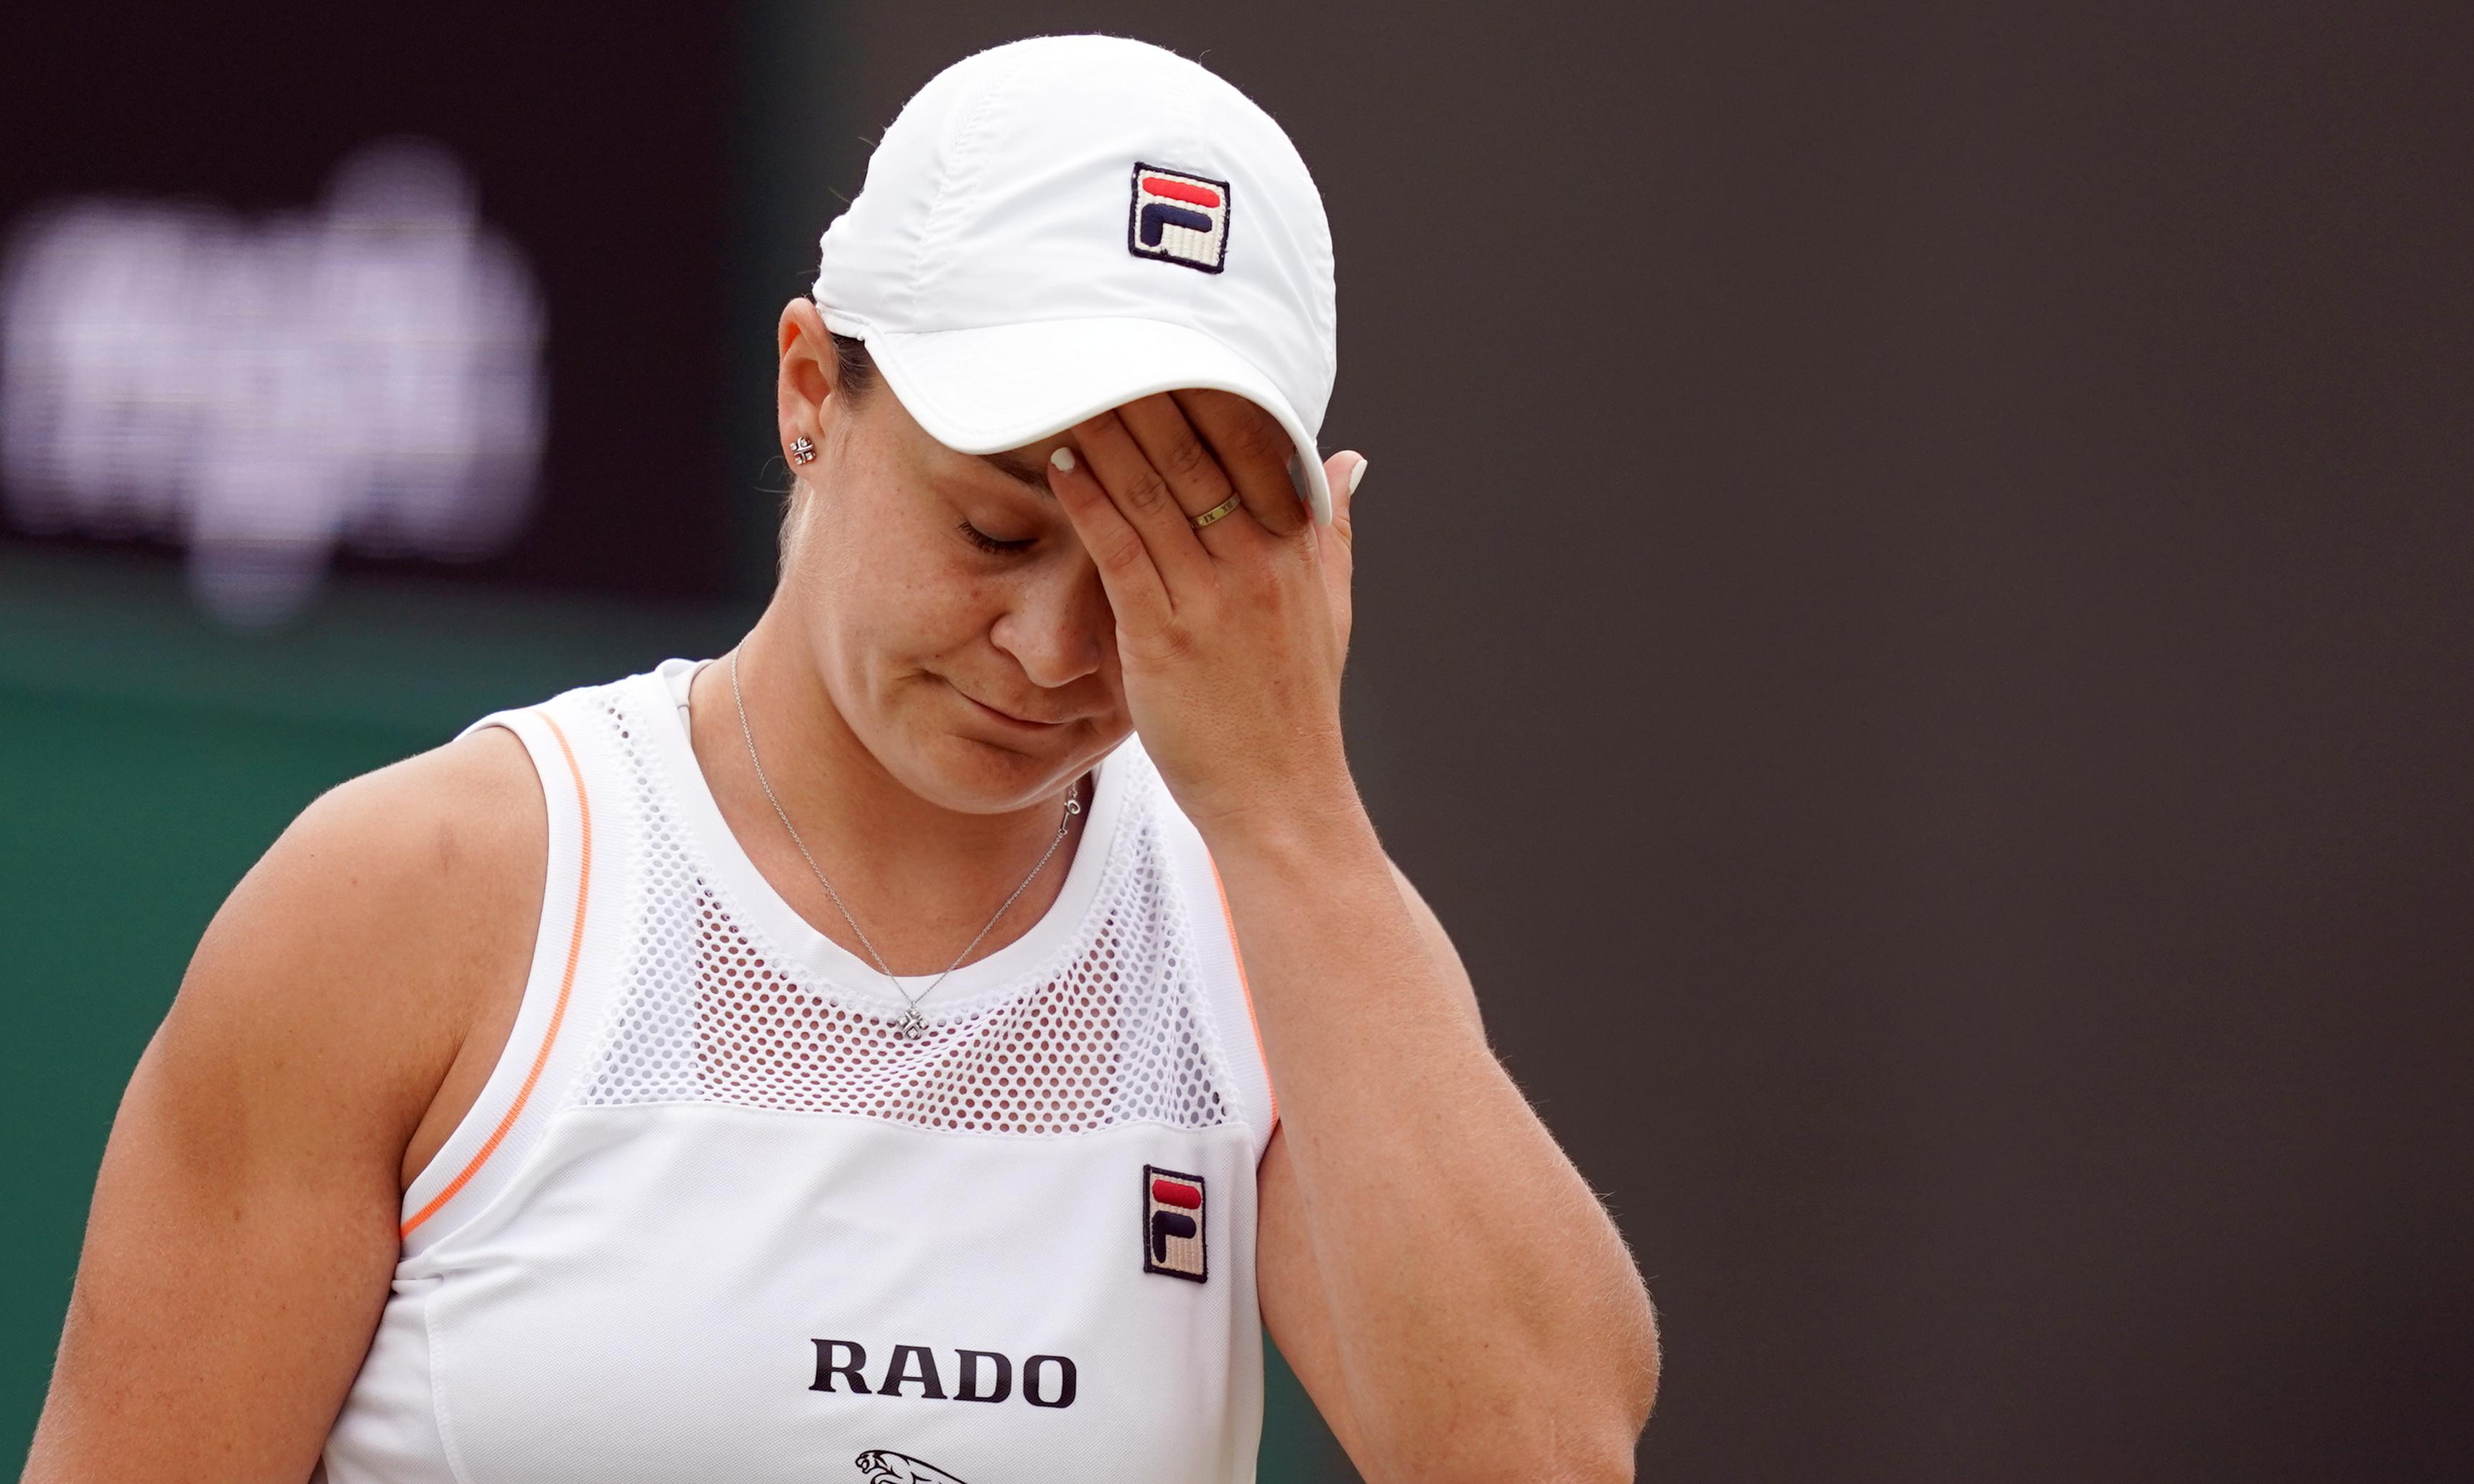 Ashleigh Barty has 'no regrets' after crashing out of Wimbledon to Riske